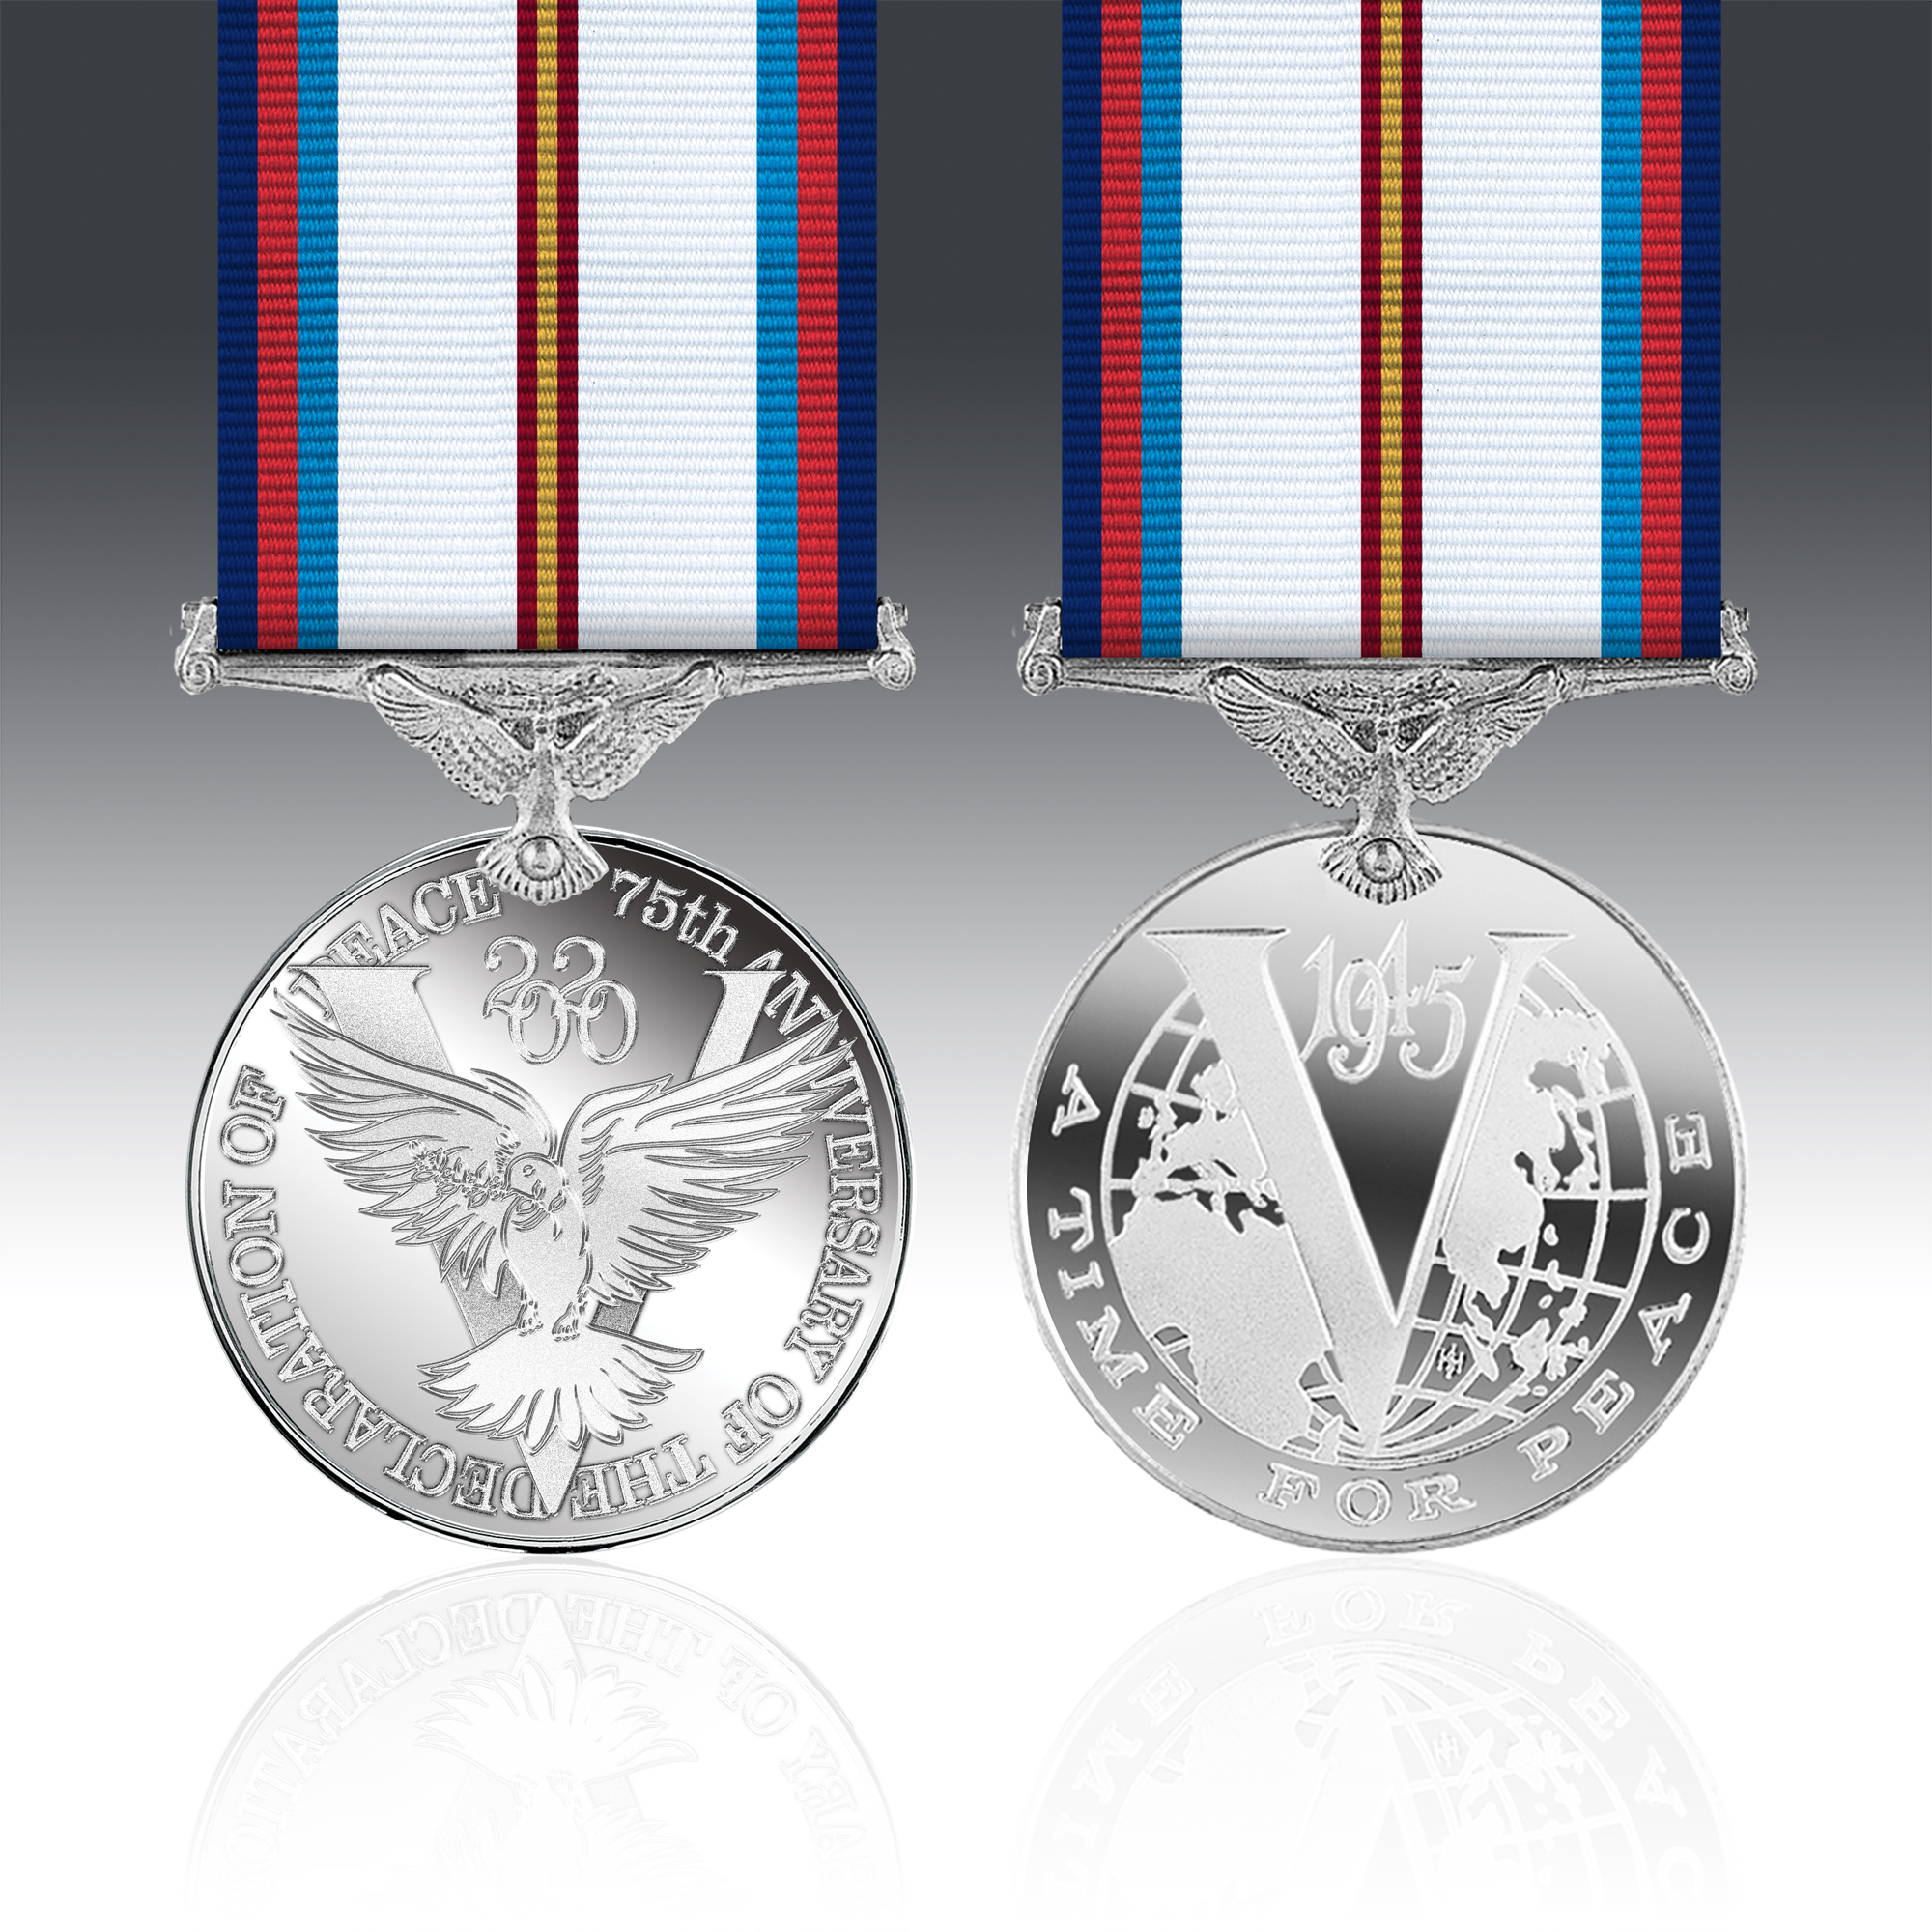 2 Shining Gold OUTSTANDING ACHIEVEMENT Medals In Box